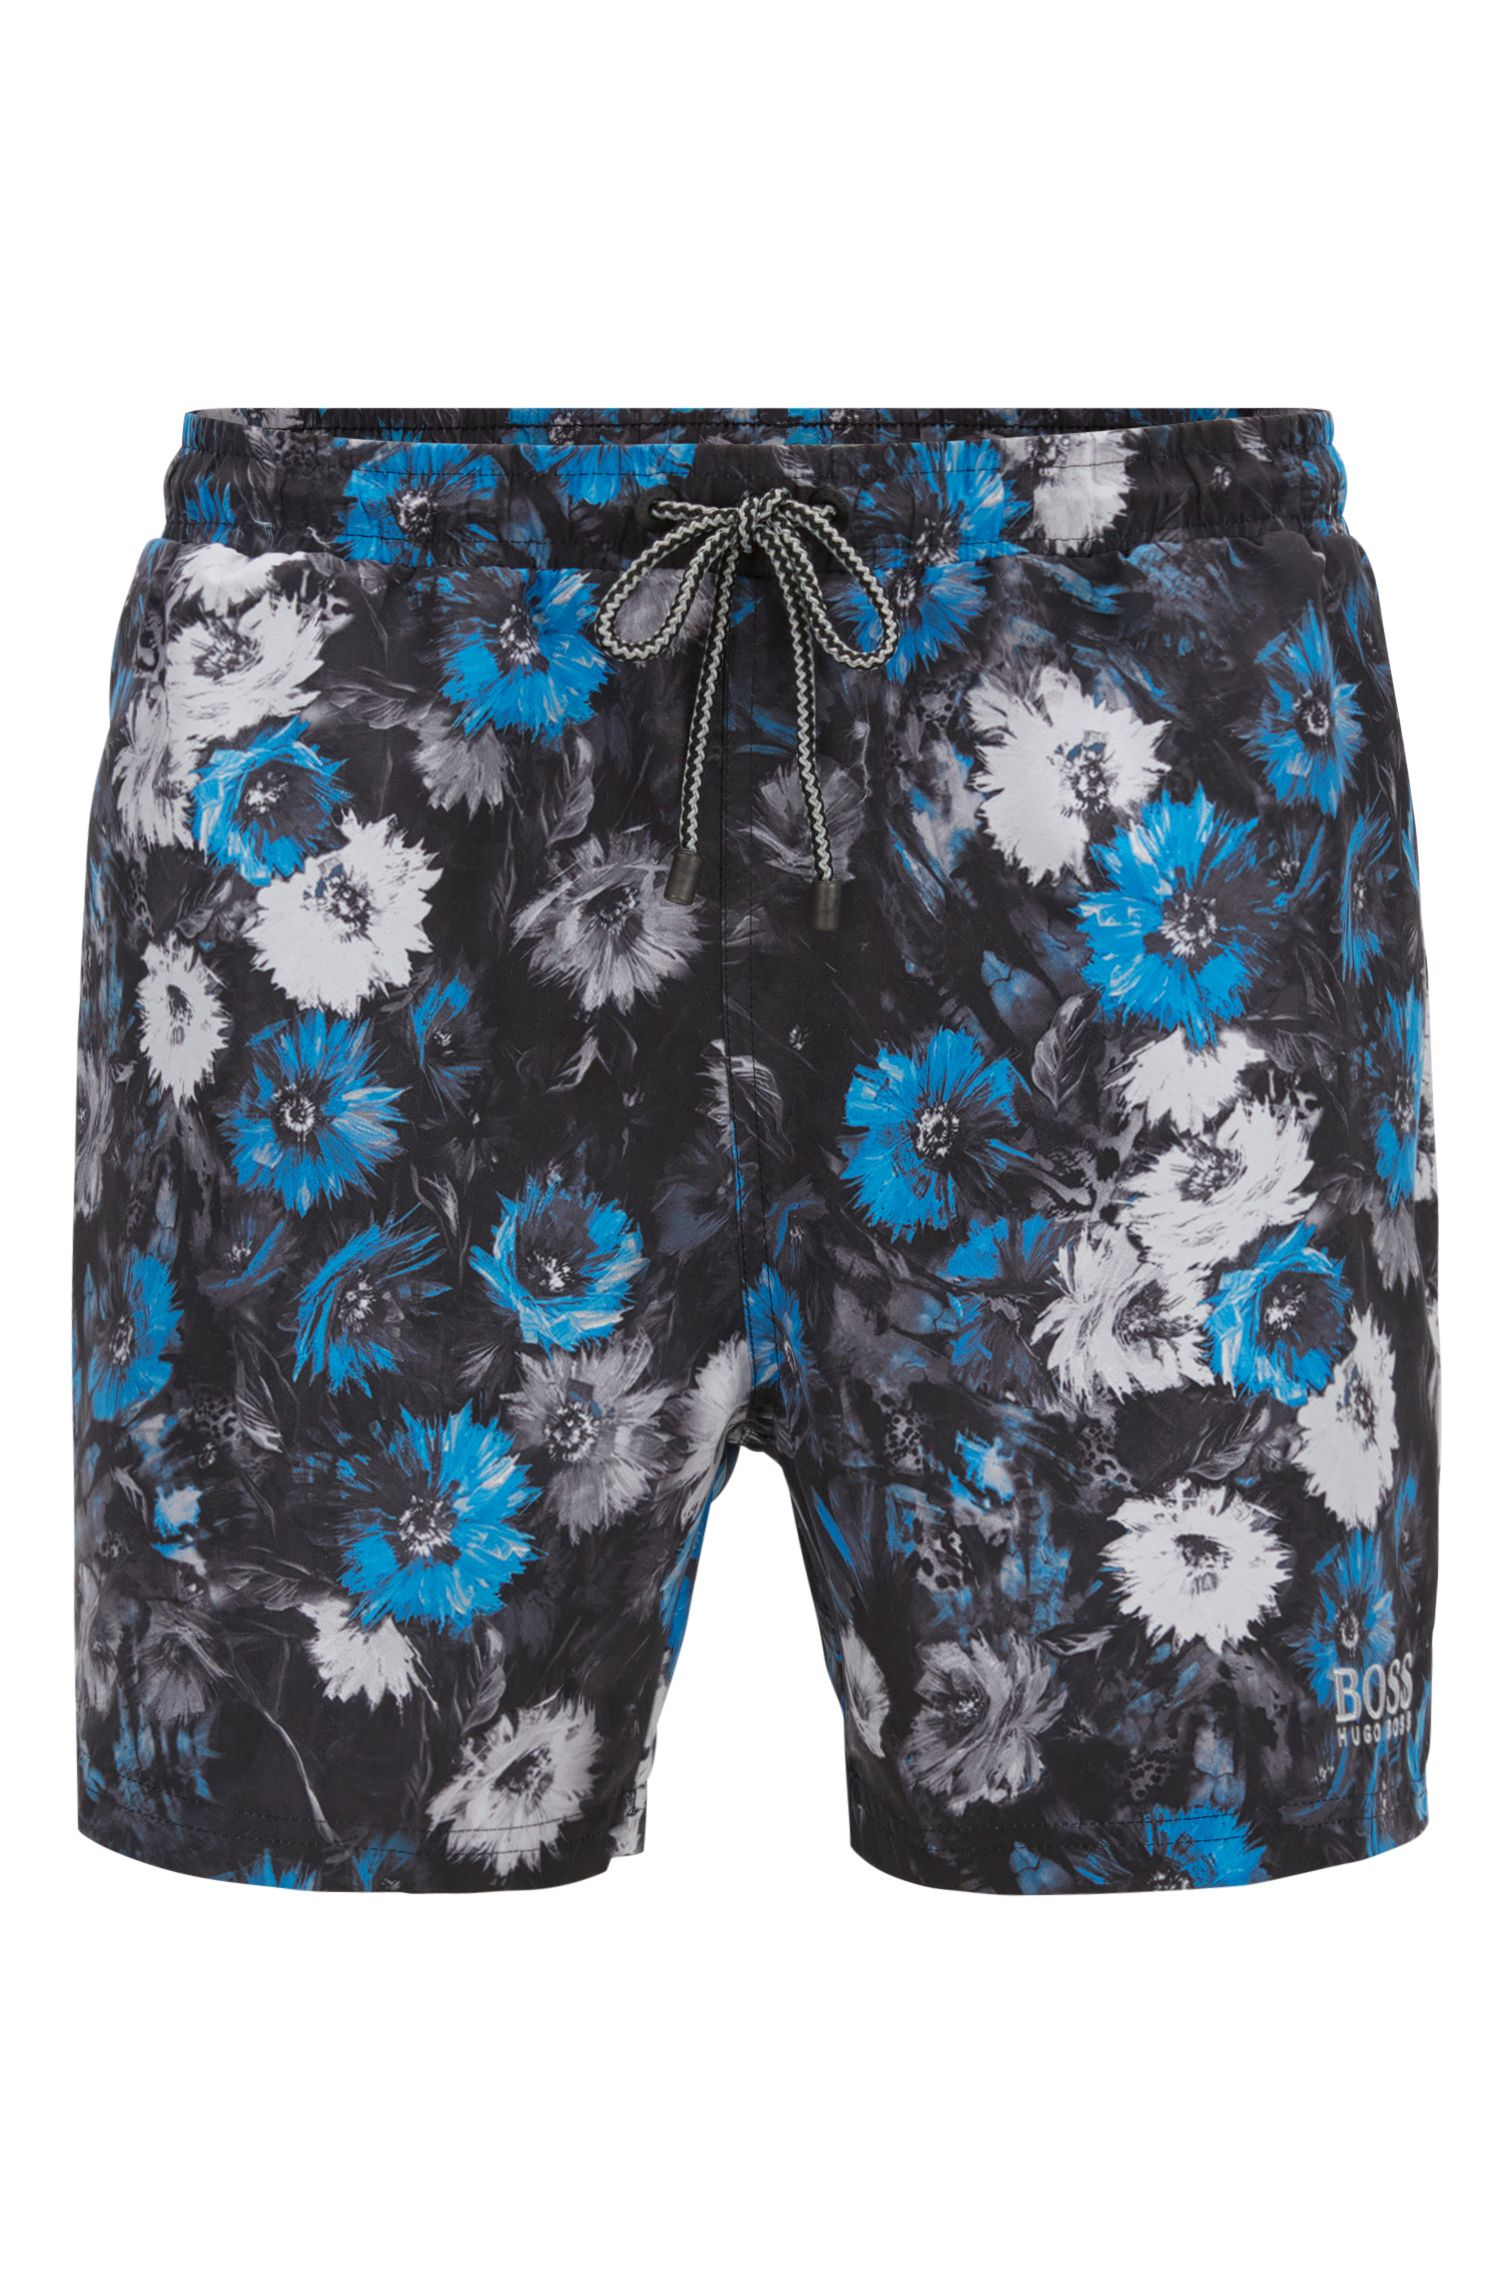 Floral-print swim shorts in a brushed technical fabric